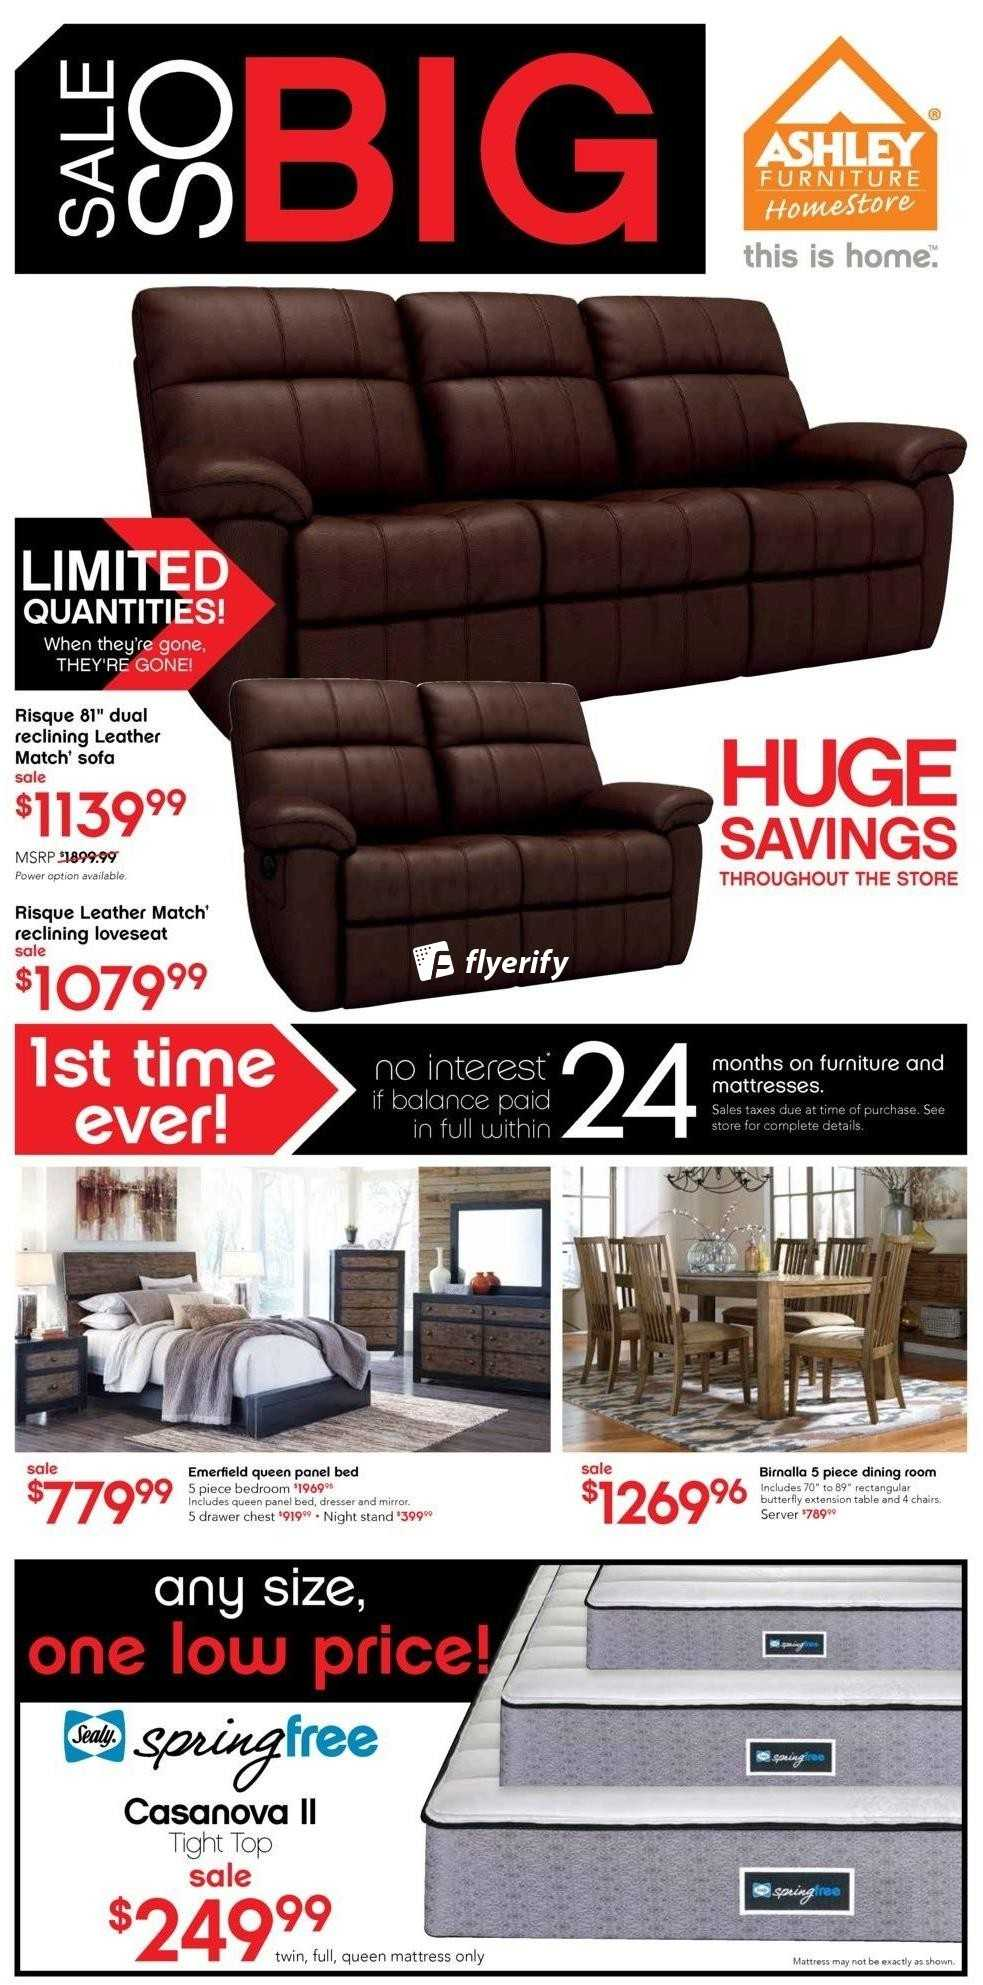 Ashley furniture homestore on flyer august 26 to for Ashley furniture homestore canada